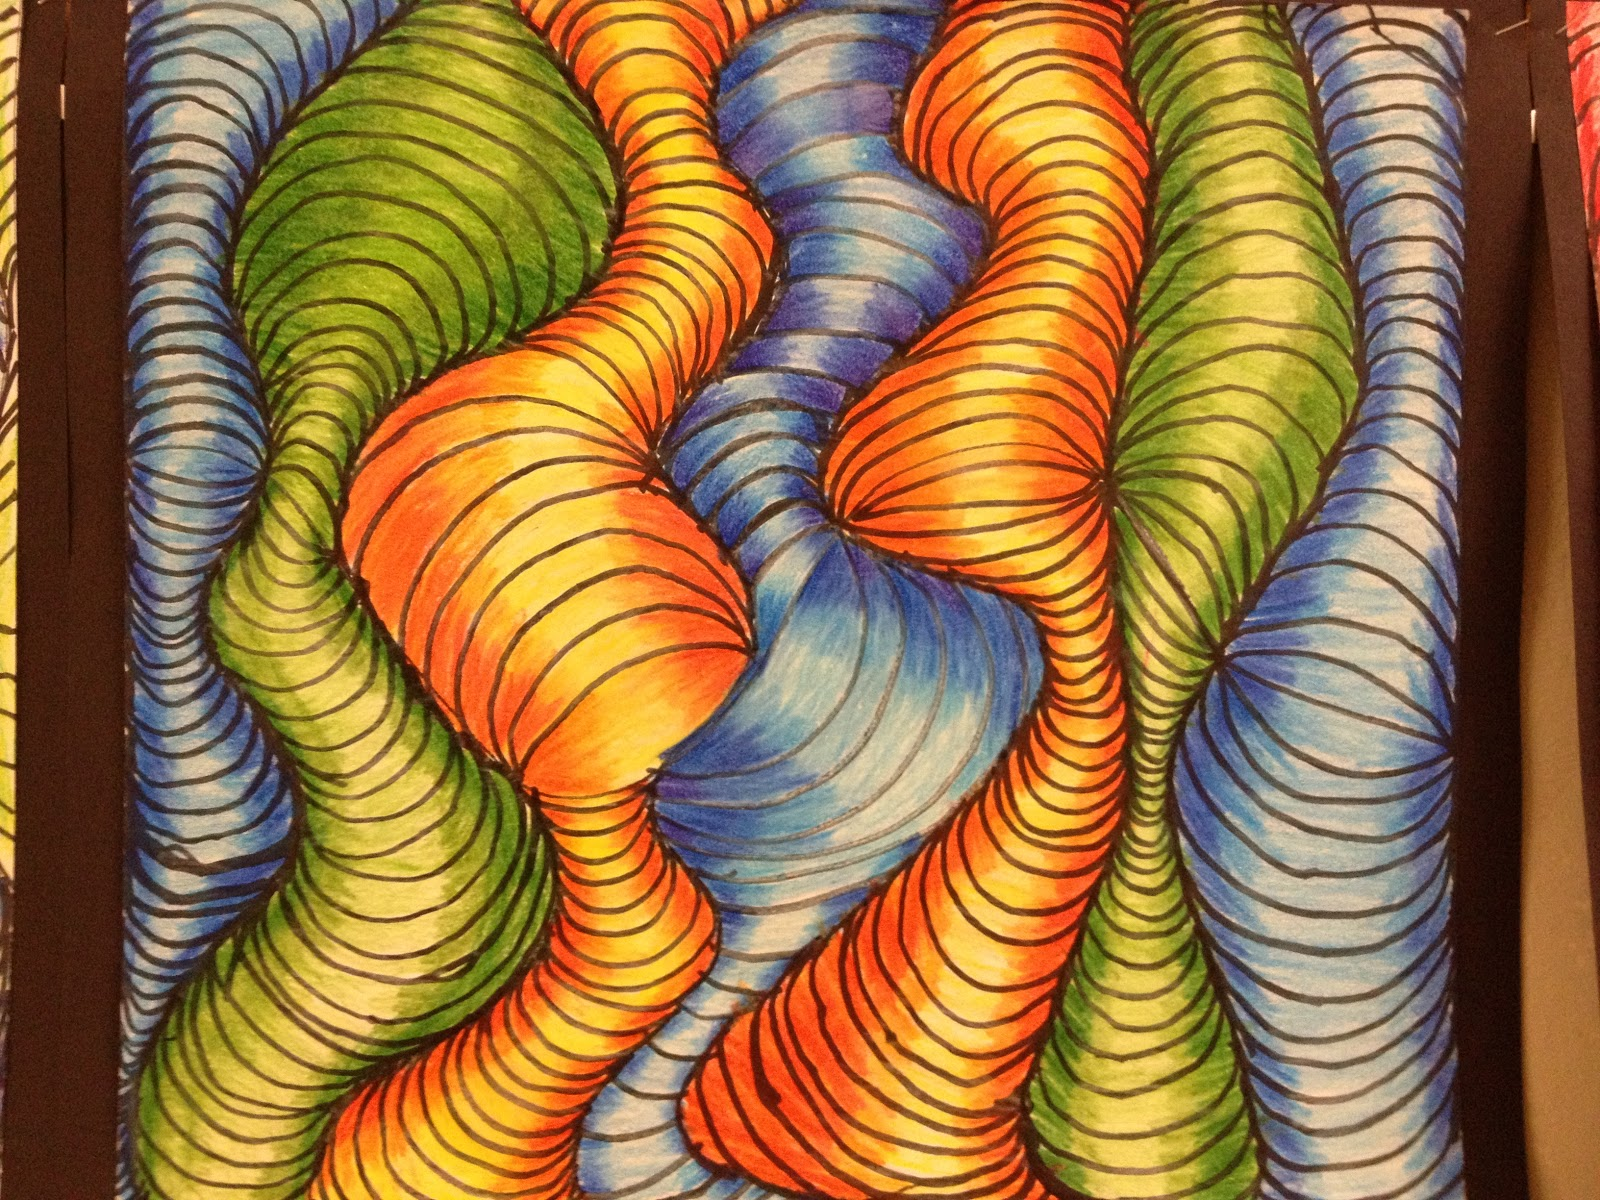 Drawn optical illusion wavy line School: projects of projects